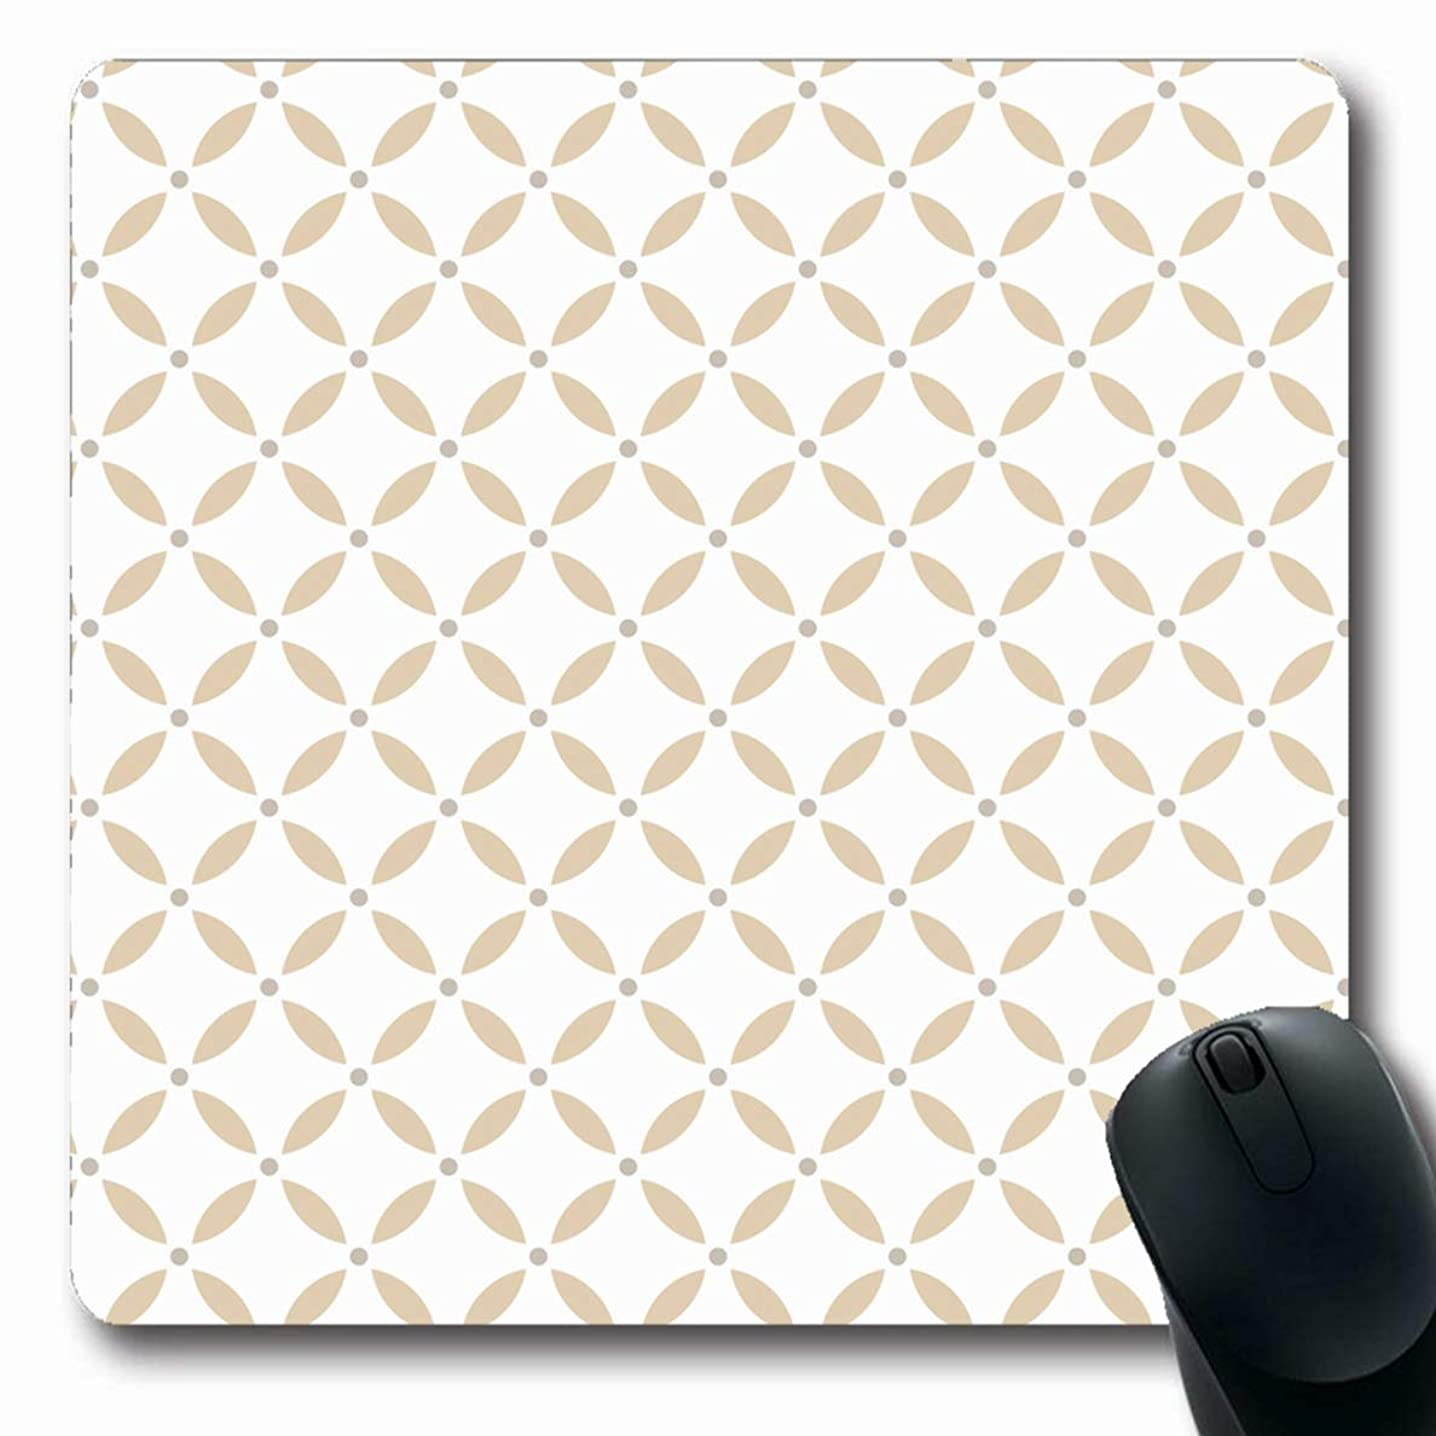 Ahawoso Mousepads Flower Silver Abstract Floral Pattern Gray Baroque Carpet Classic Color Damask Design Oblong Shape 7.9 x 9.5 Inches Non-Slip Gaming Mouse Pad Rubber Oblong Mat